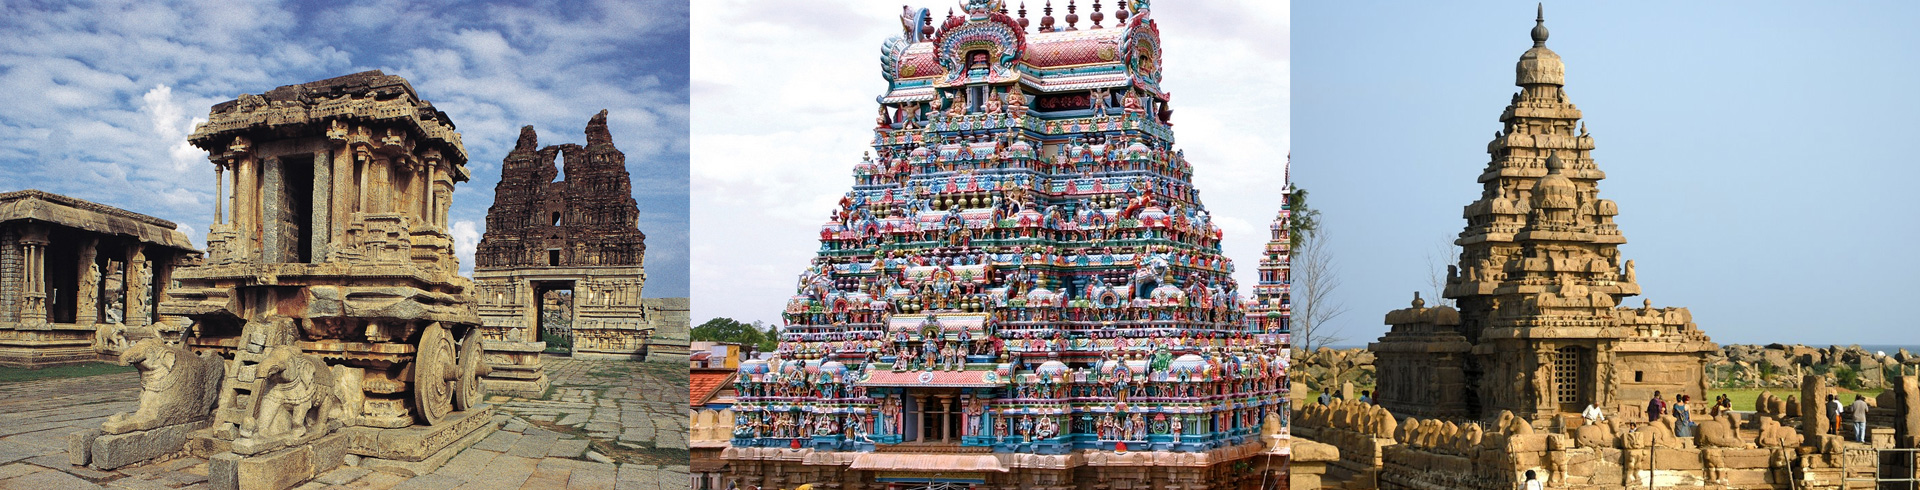 South India Pilgrimage Tour Club Holidays Adventures